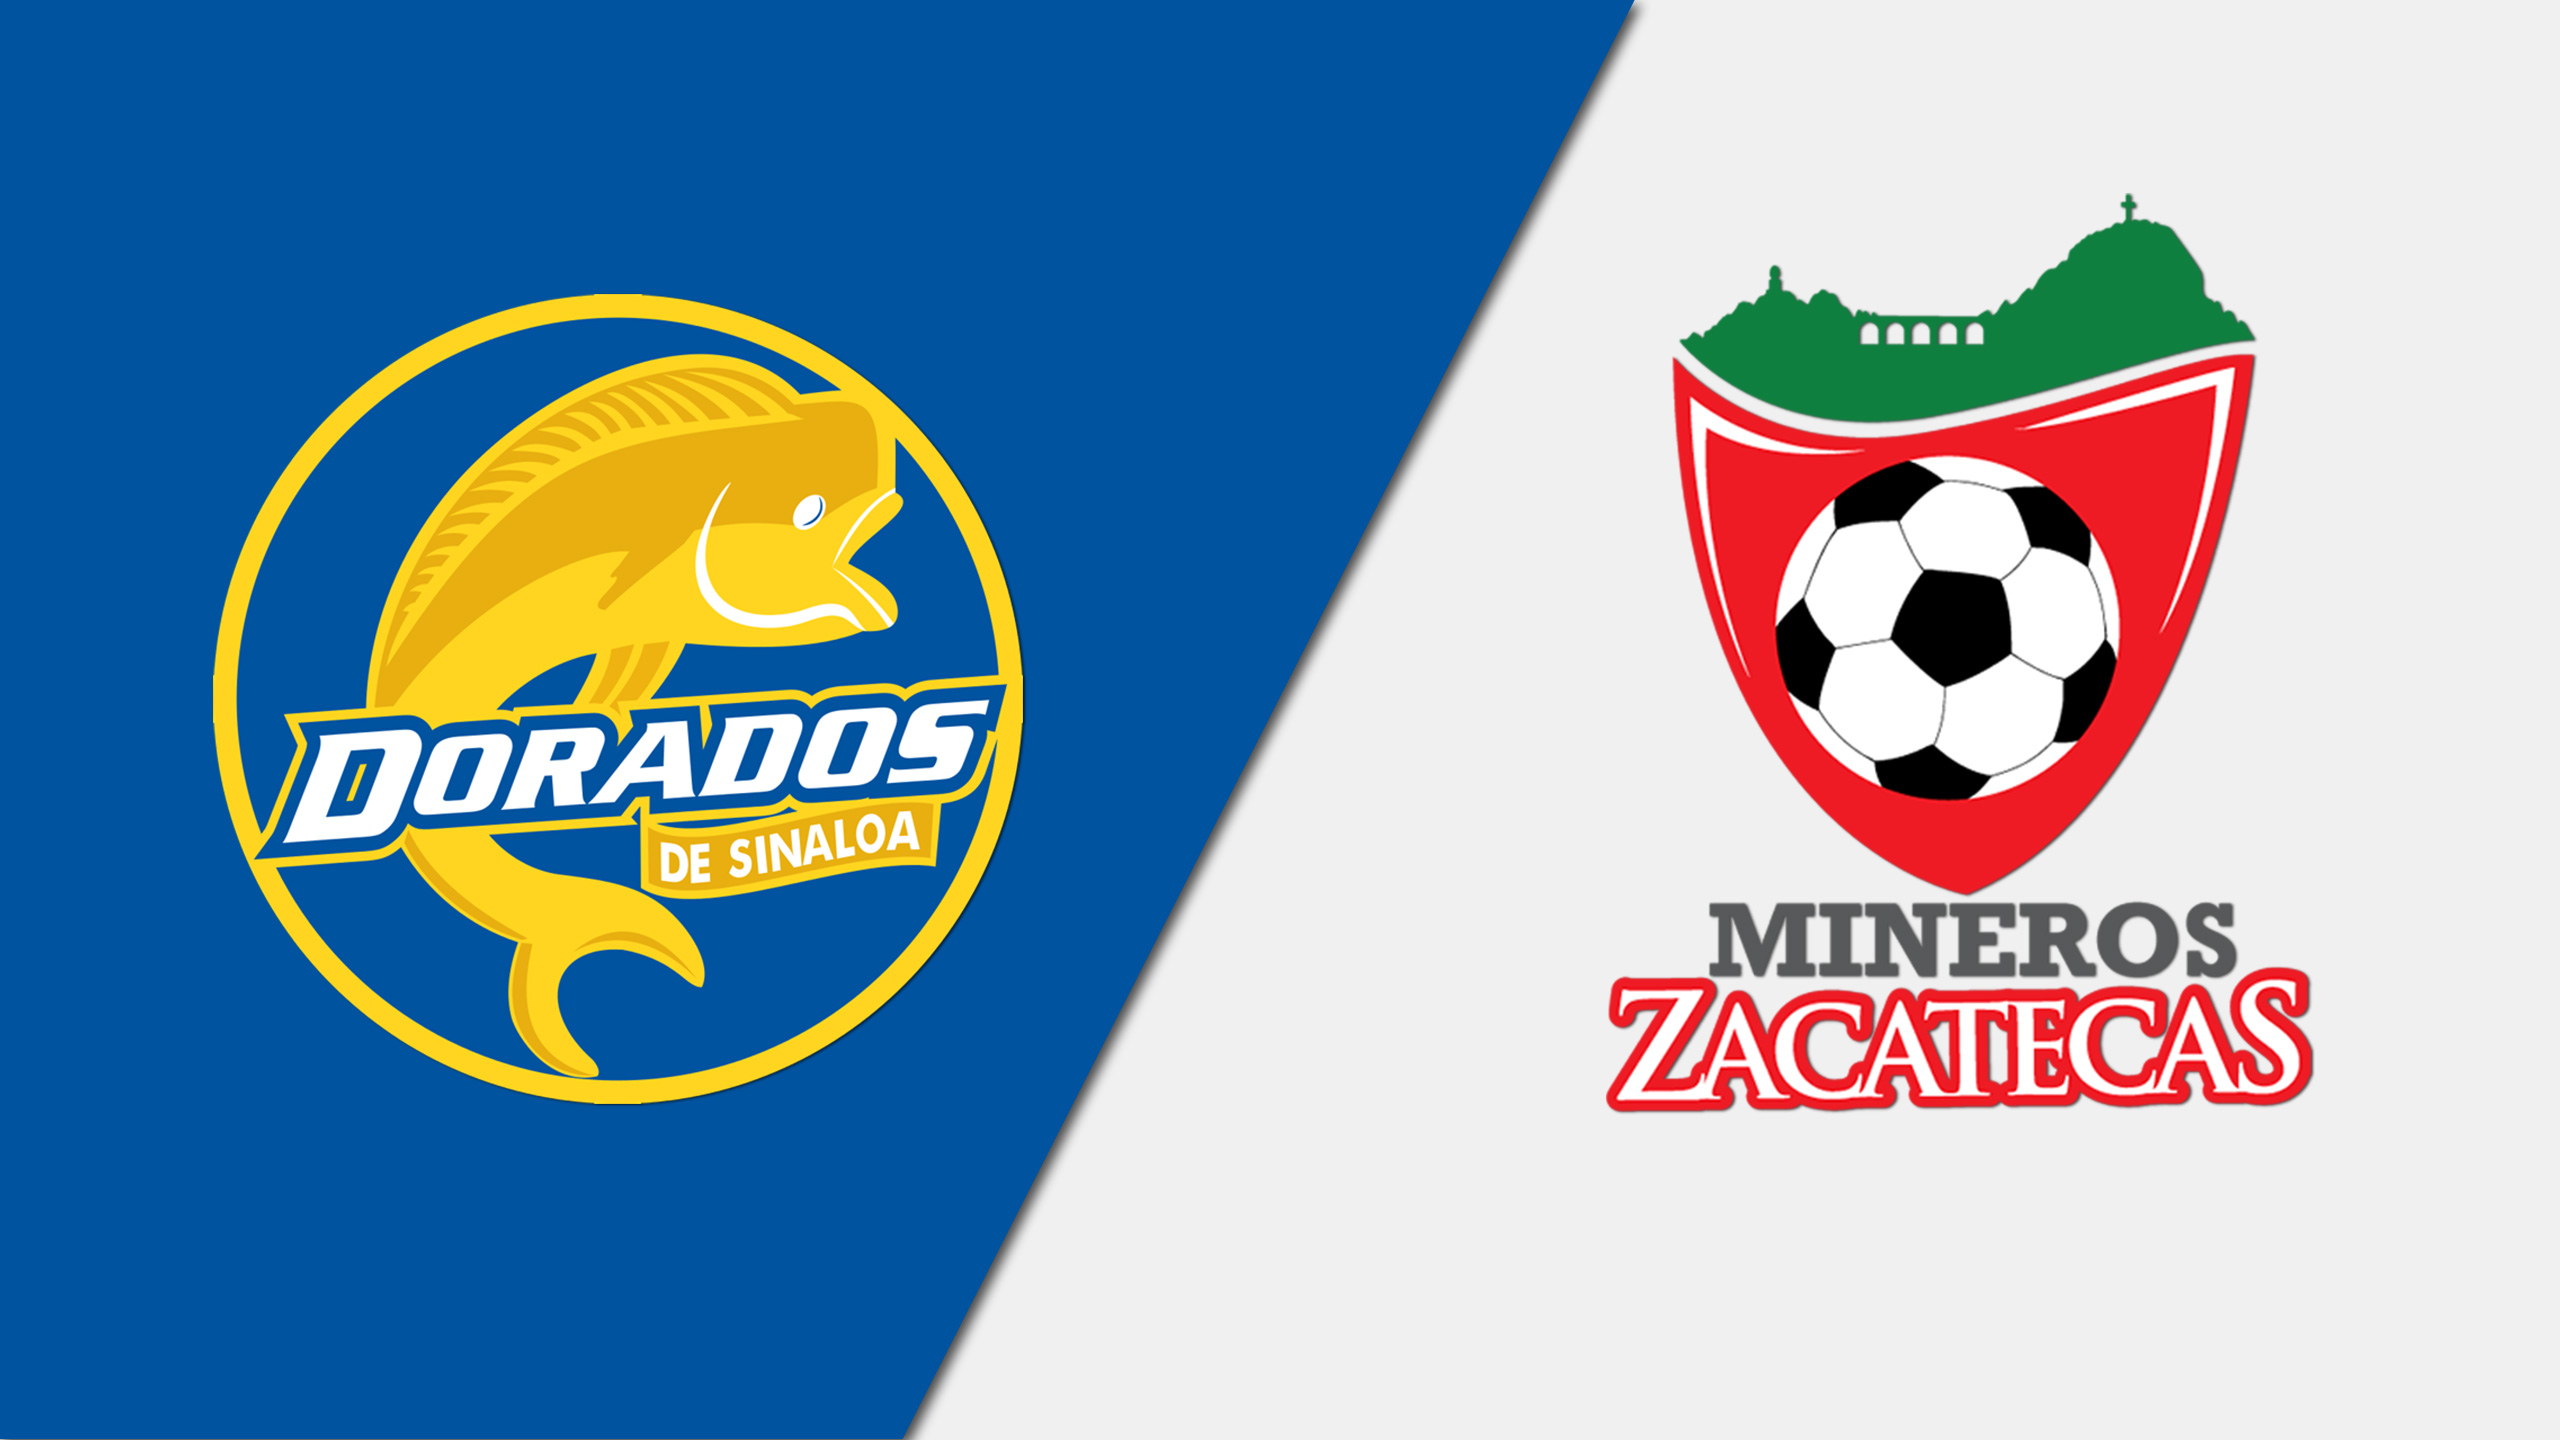 In Spanish - Dorados de Sinaloa vs. Mineros de Zacatecas (Quarterfinals, Leg 1) (Copa MX)